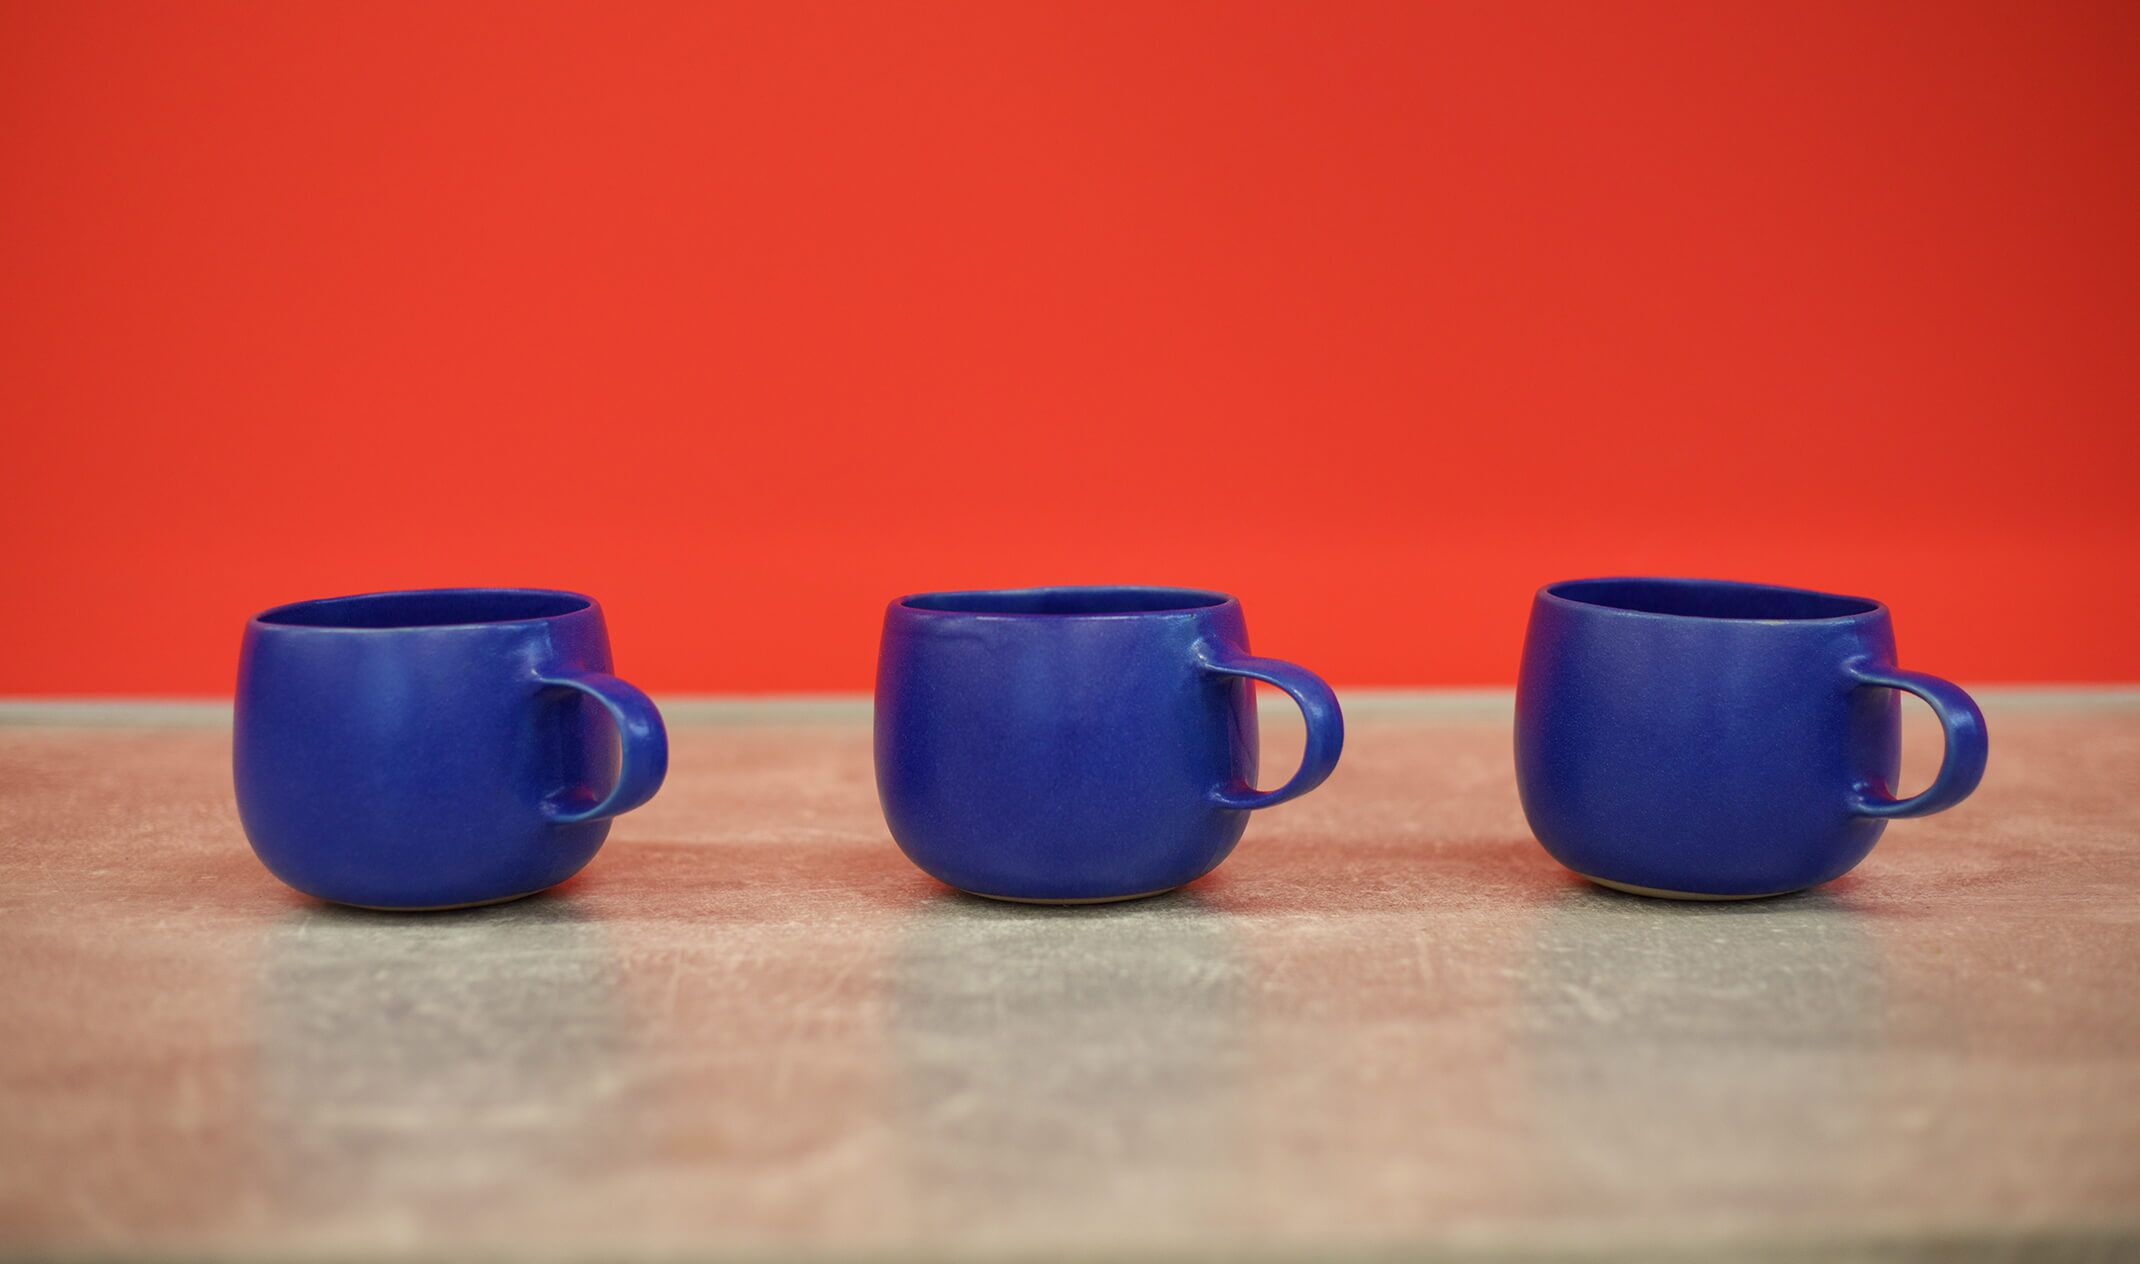 three blue mugs against red wall